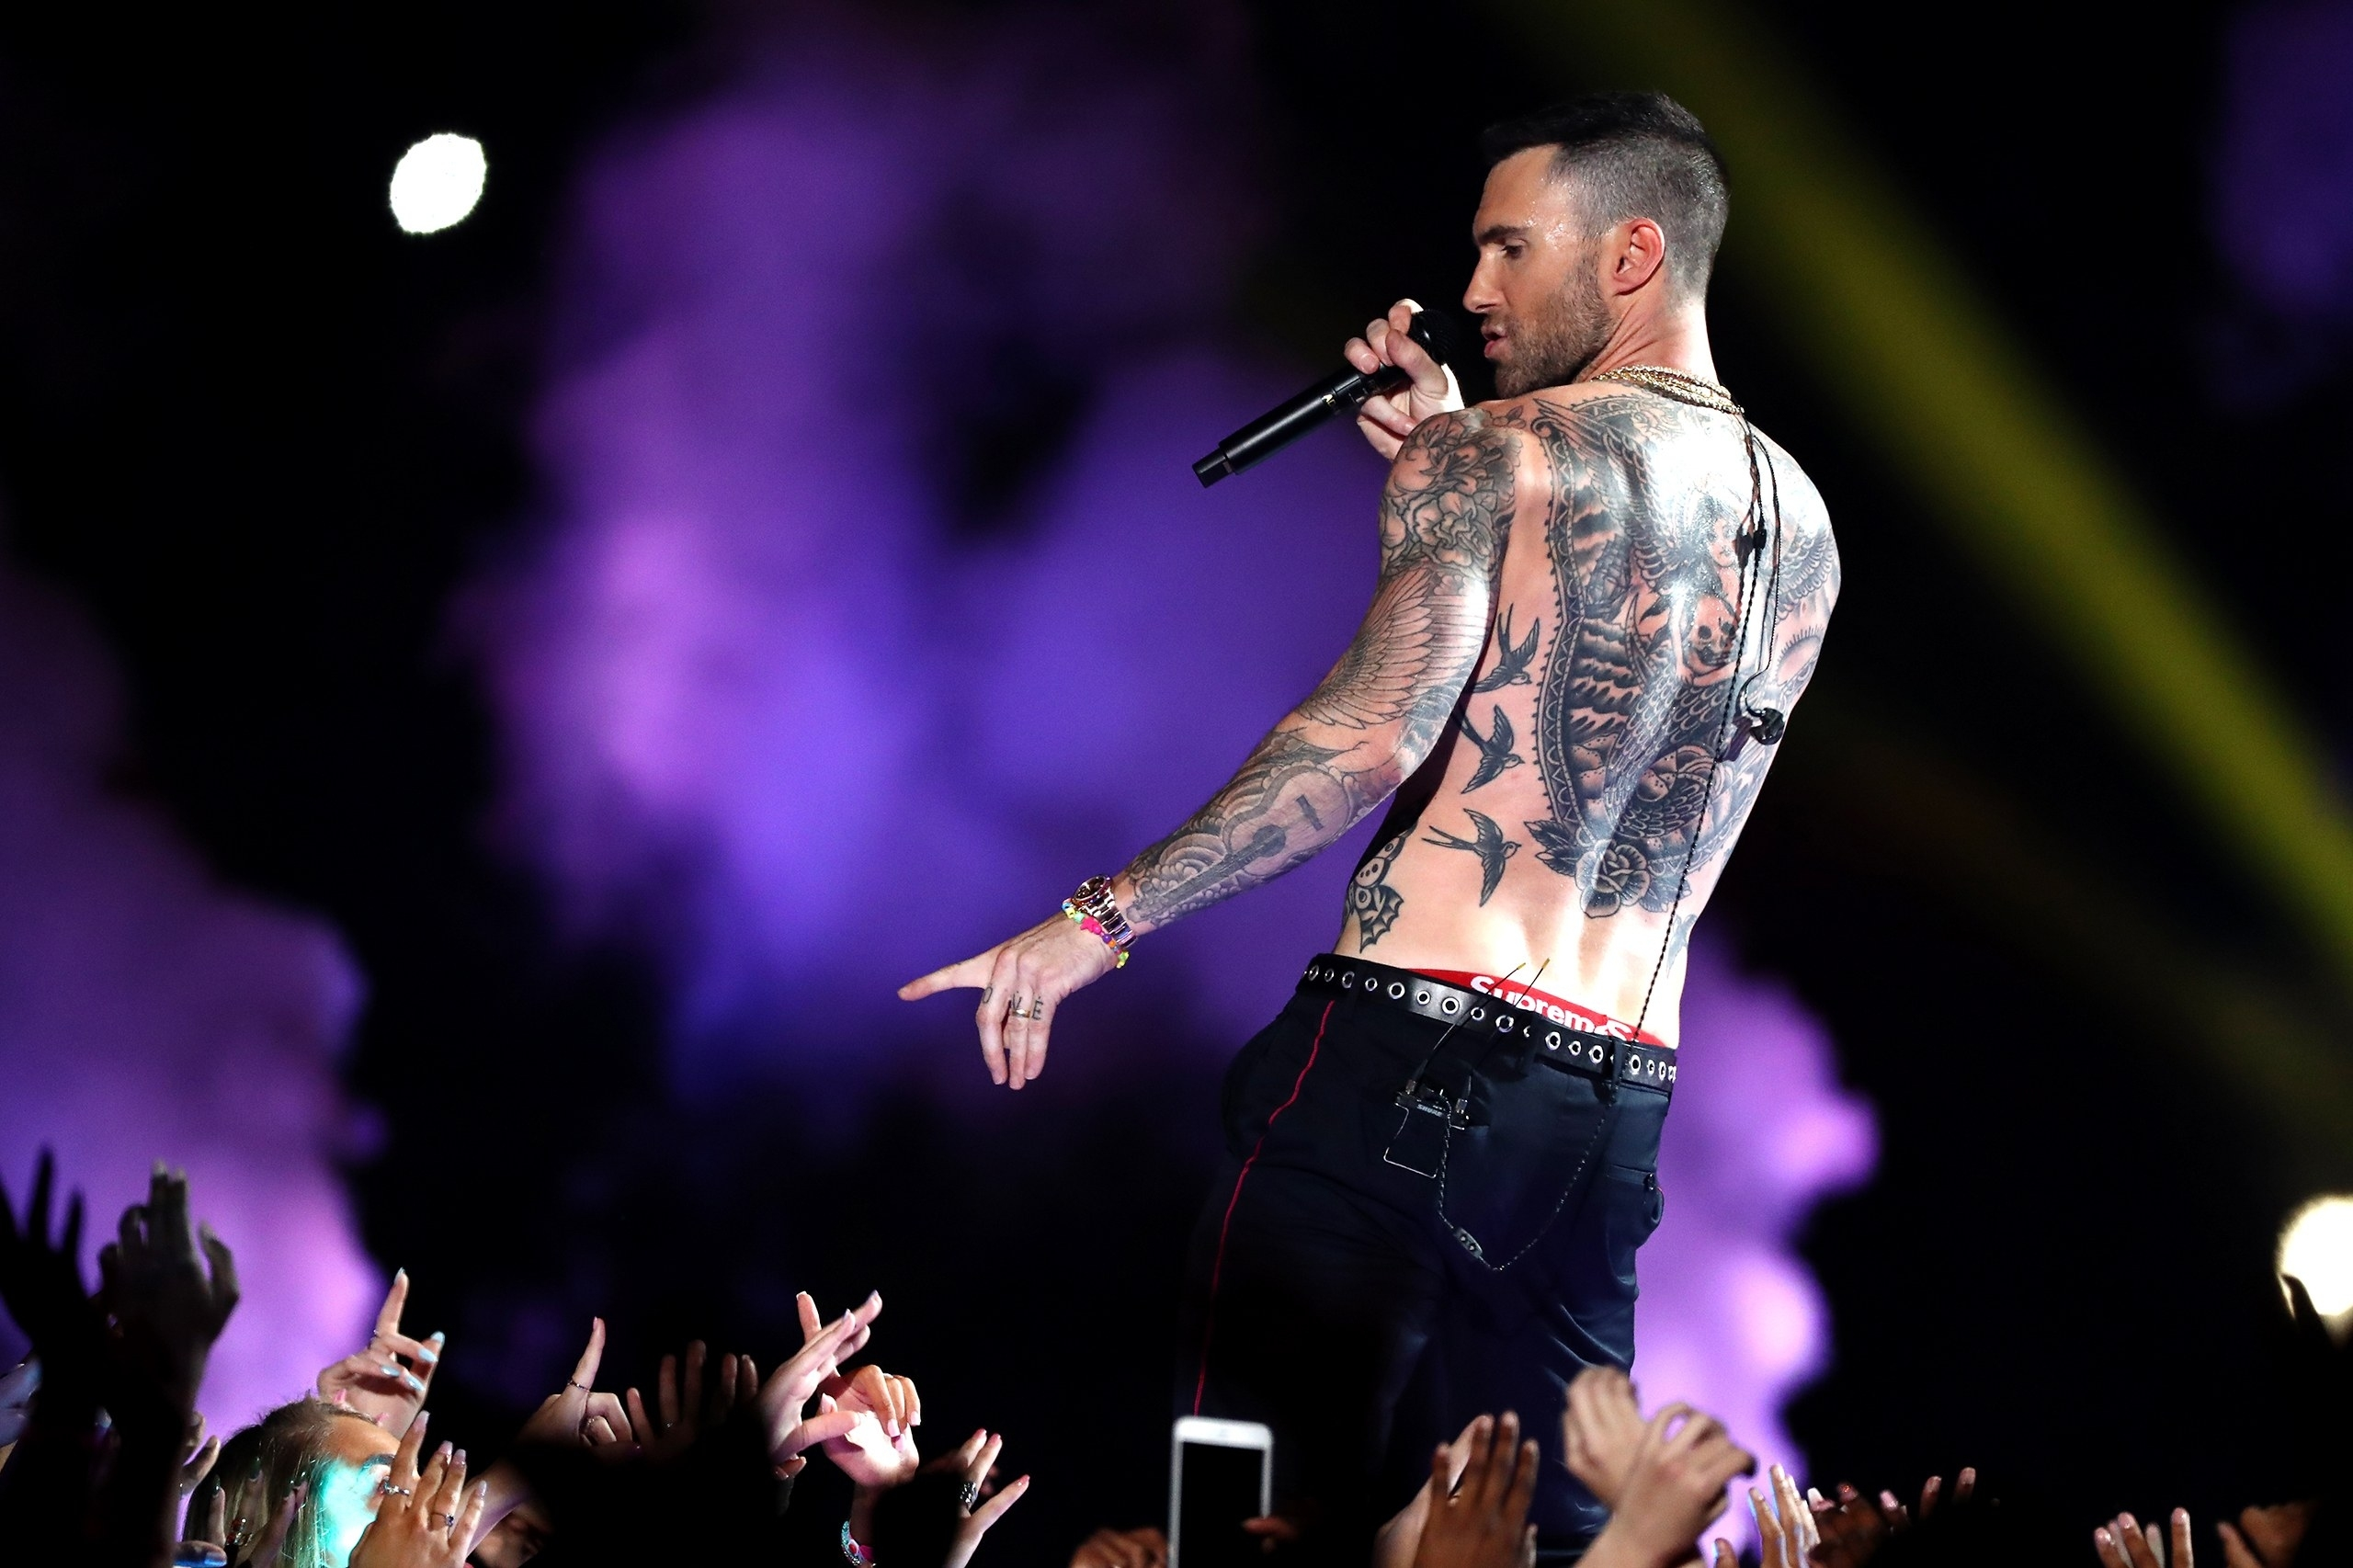 The Artless Spectacle Of Maroon 5 At The Super Bowl   The intended for Super Bowl Maroon 5